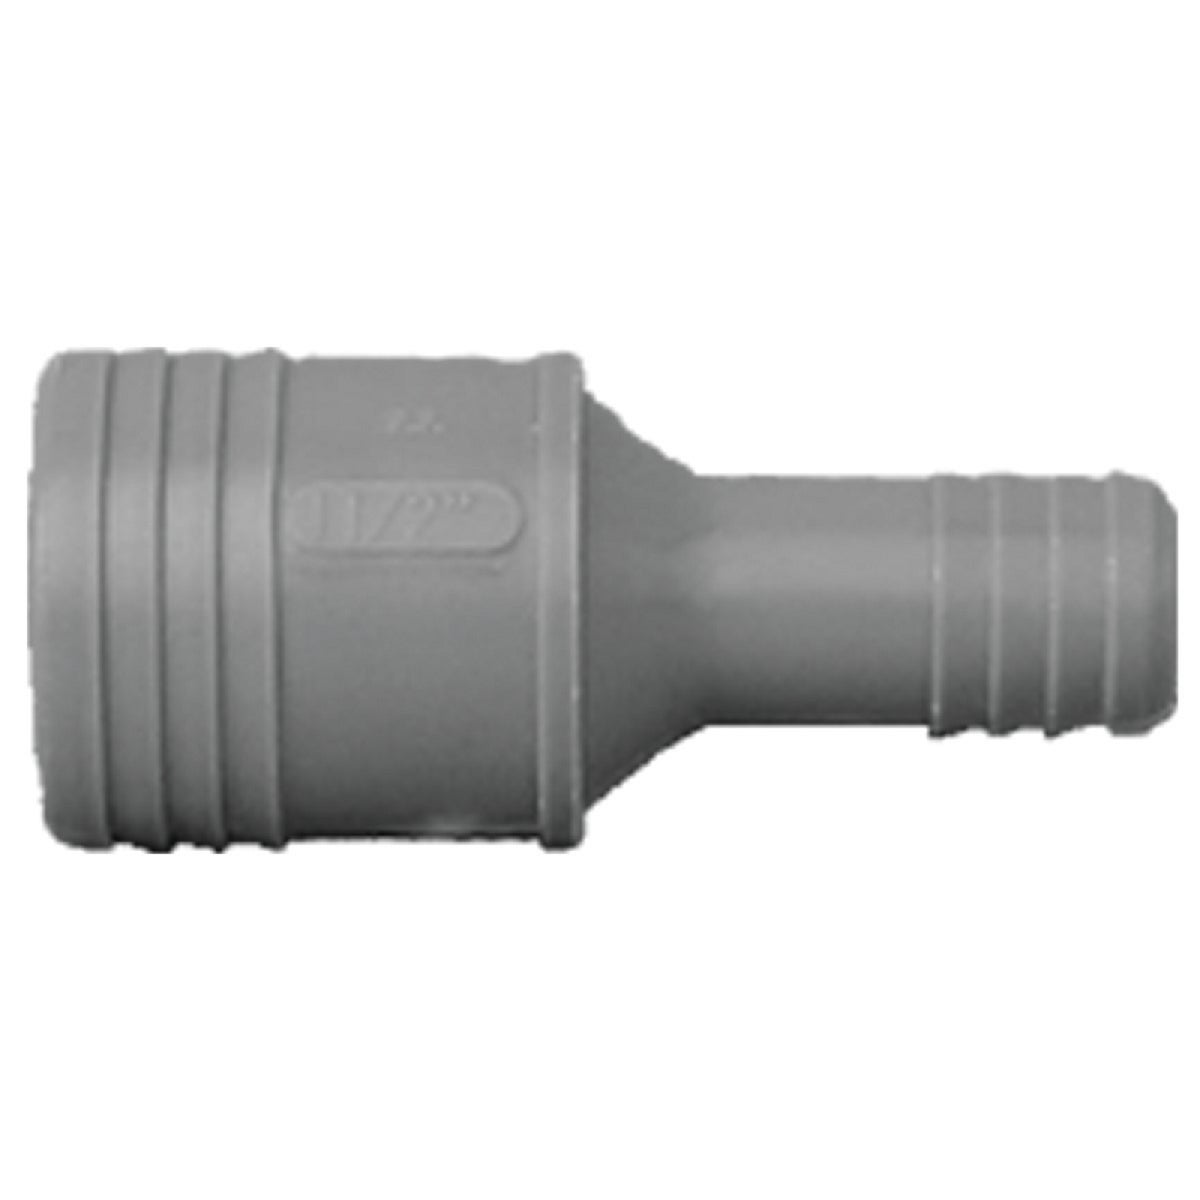 3/4X1/2 INSERT COUPLING - 350175 by Genova Inc